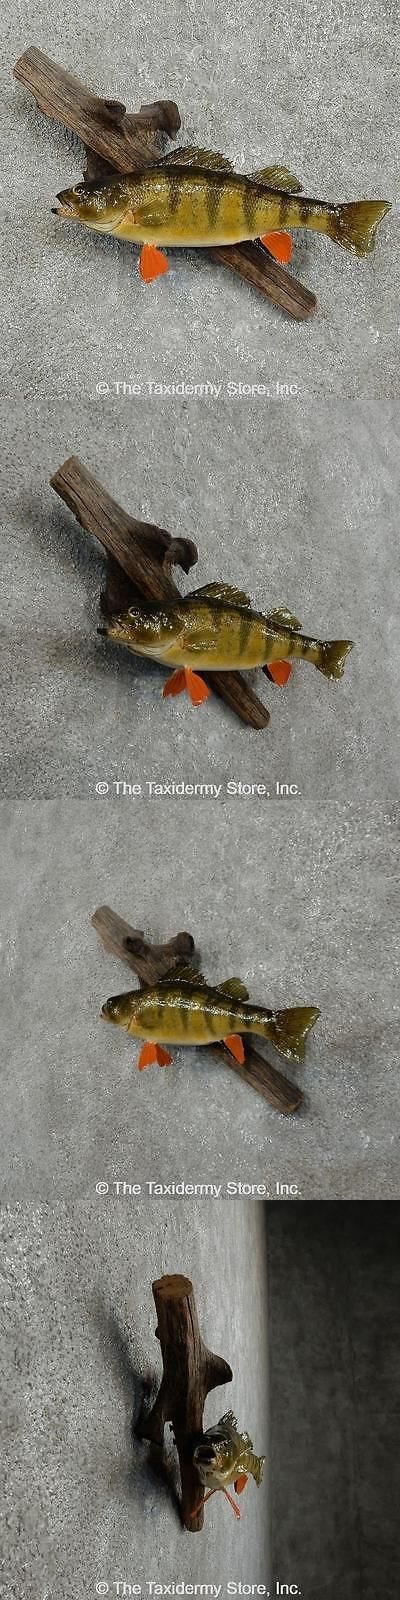 Fish 71127: #16052 E   10.5 Perch Freshwater Fish Taxidermy Mount For Sale BUY IT NOW ONLY: $190.0